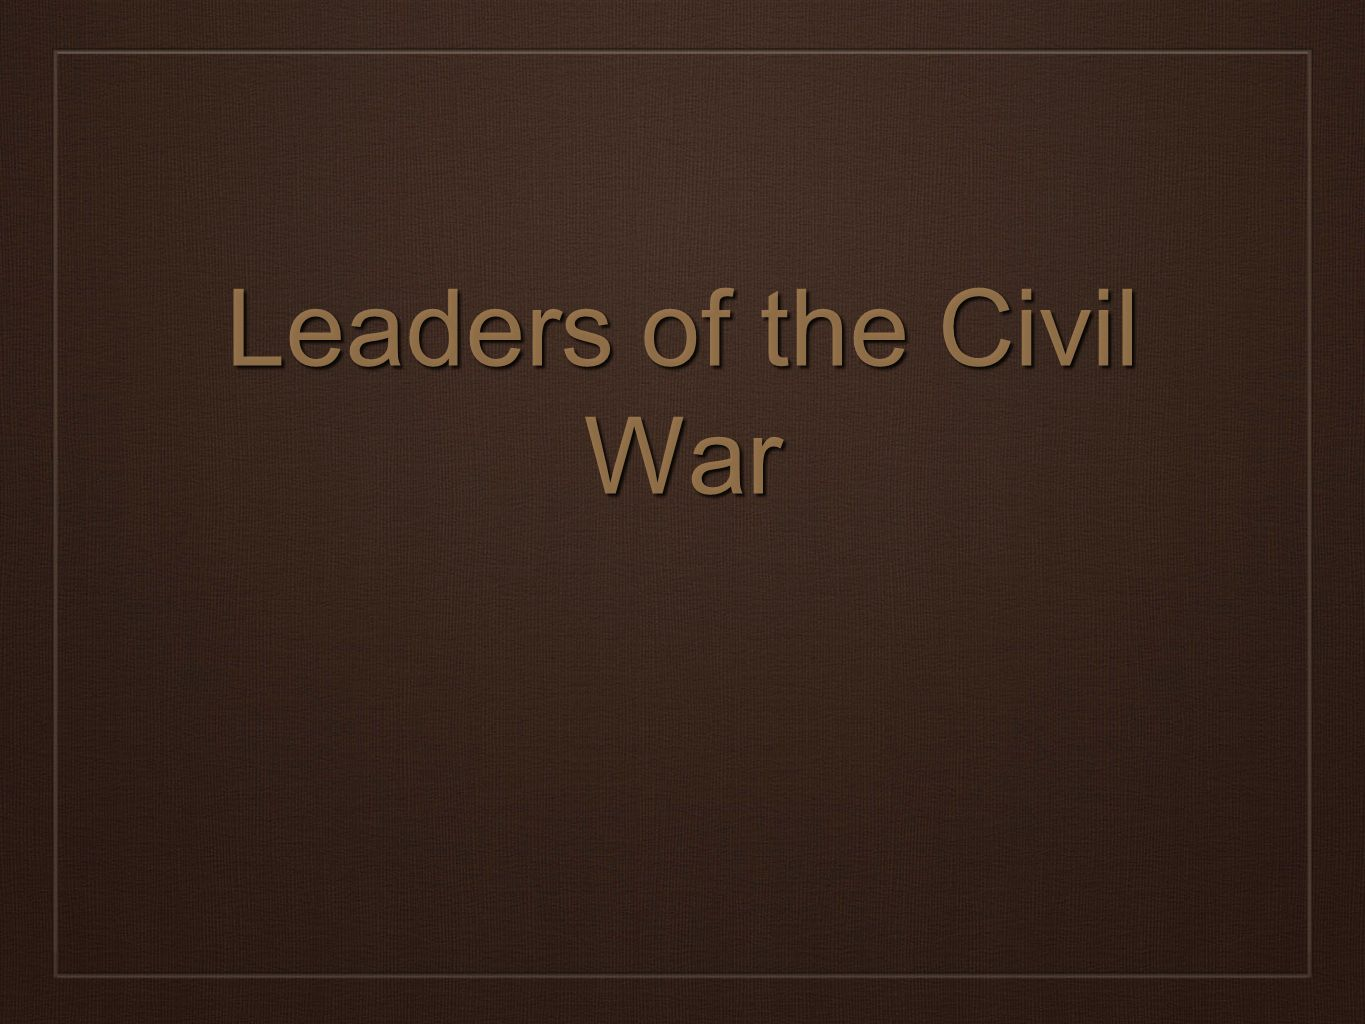 Leaders of the Civil War